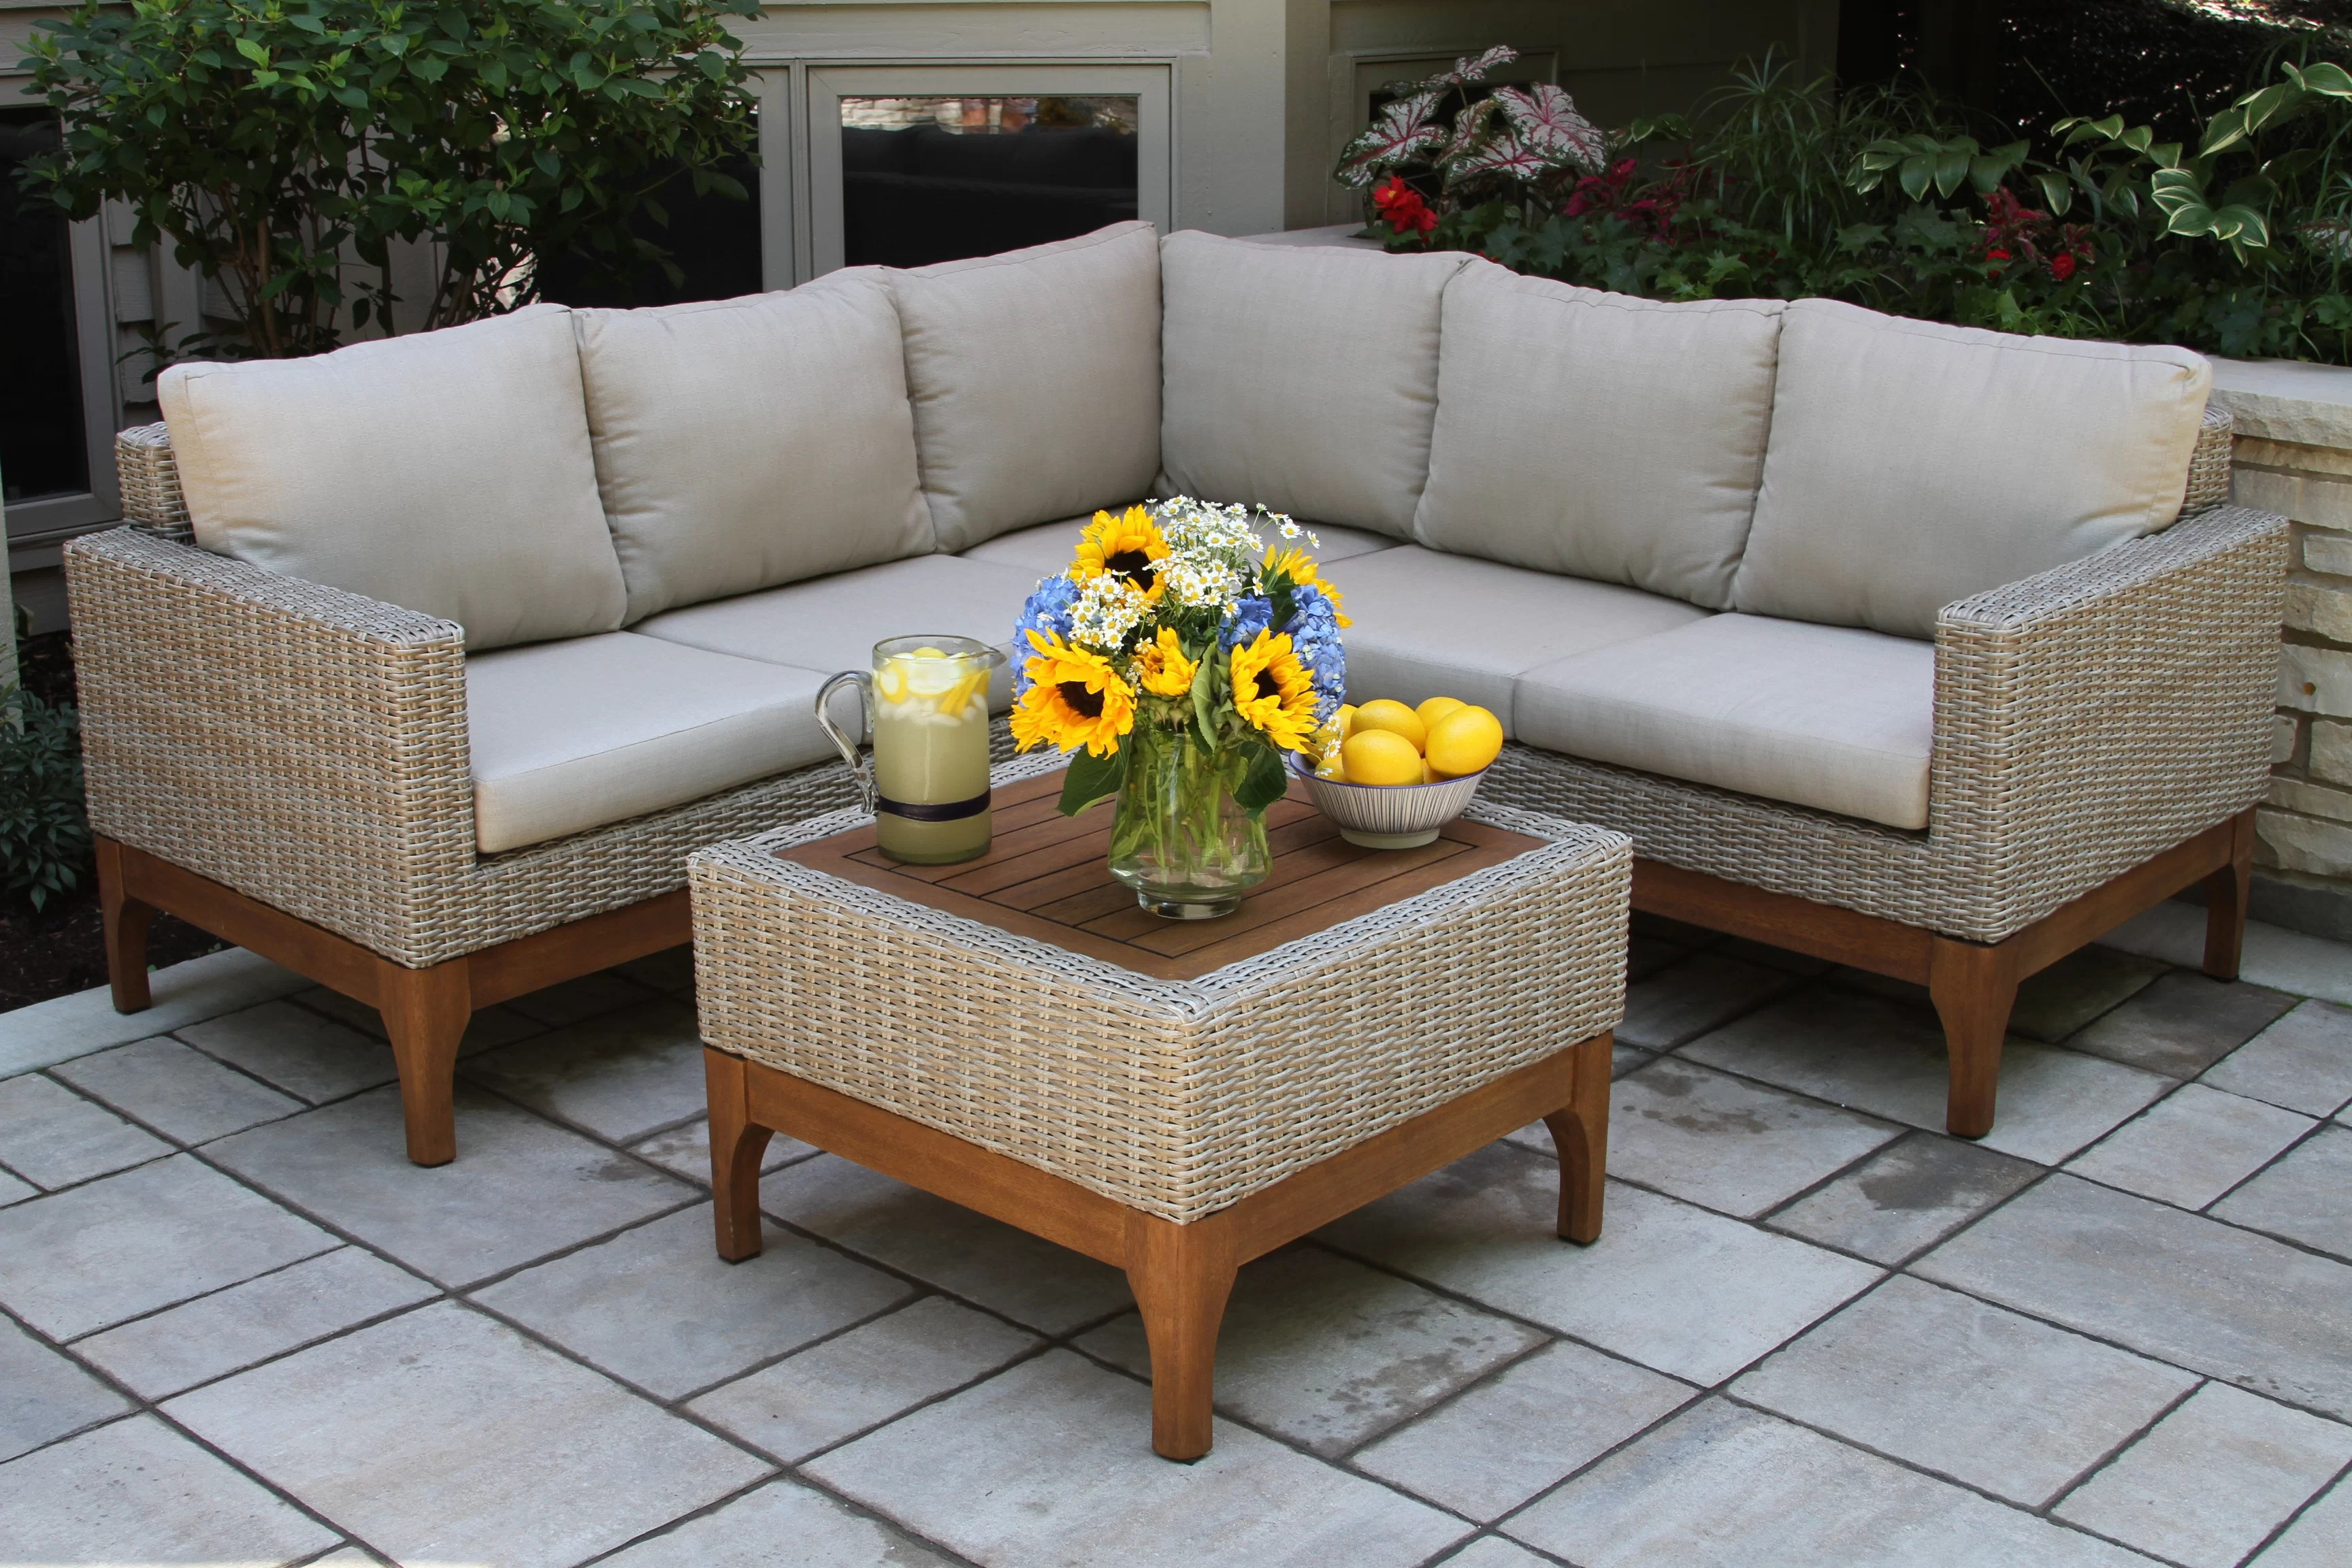 Baptist 6 Piece Rattan Sofa Set With Cushions Beachcrest Home Mallie 4 Piece Sectional Set With Cushions